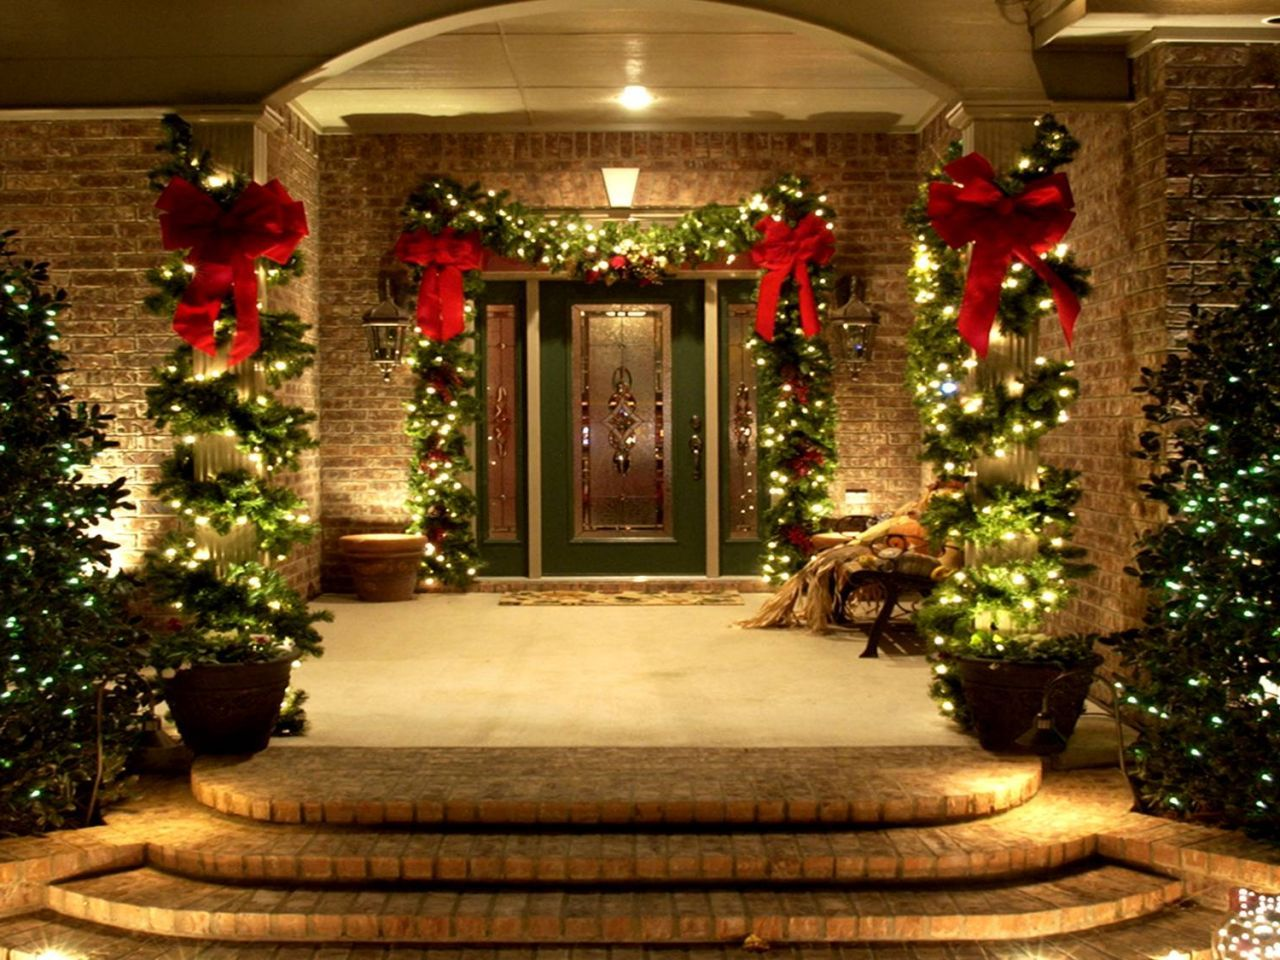 Use of lighting and decorative plants to the outdoor for for Holiday lawn decorations